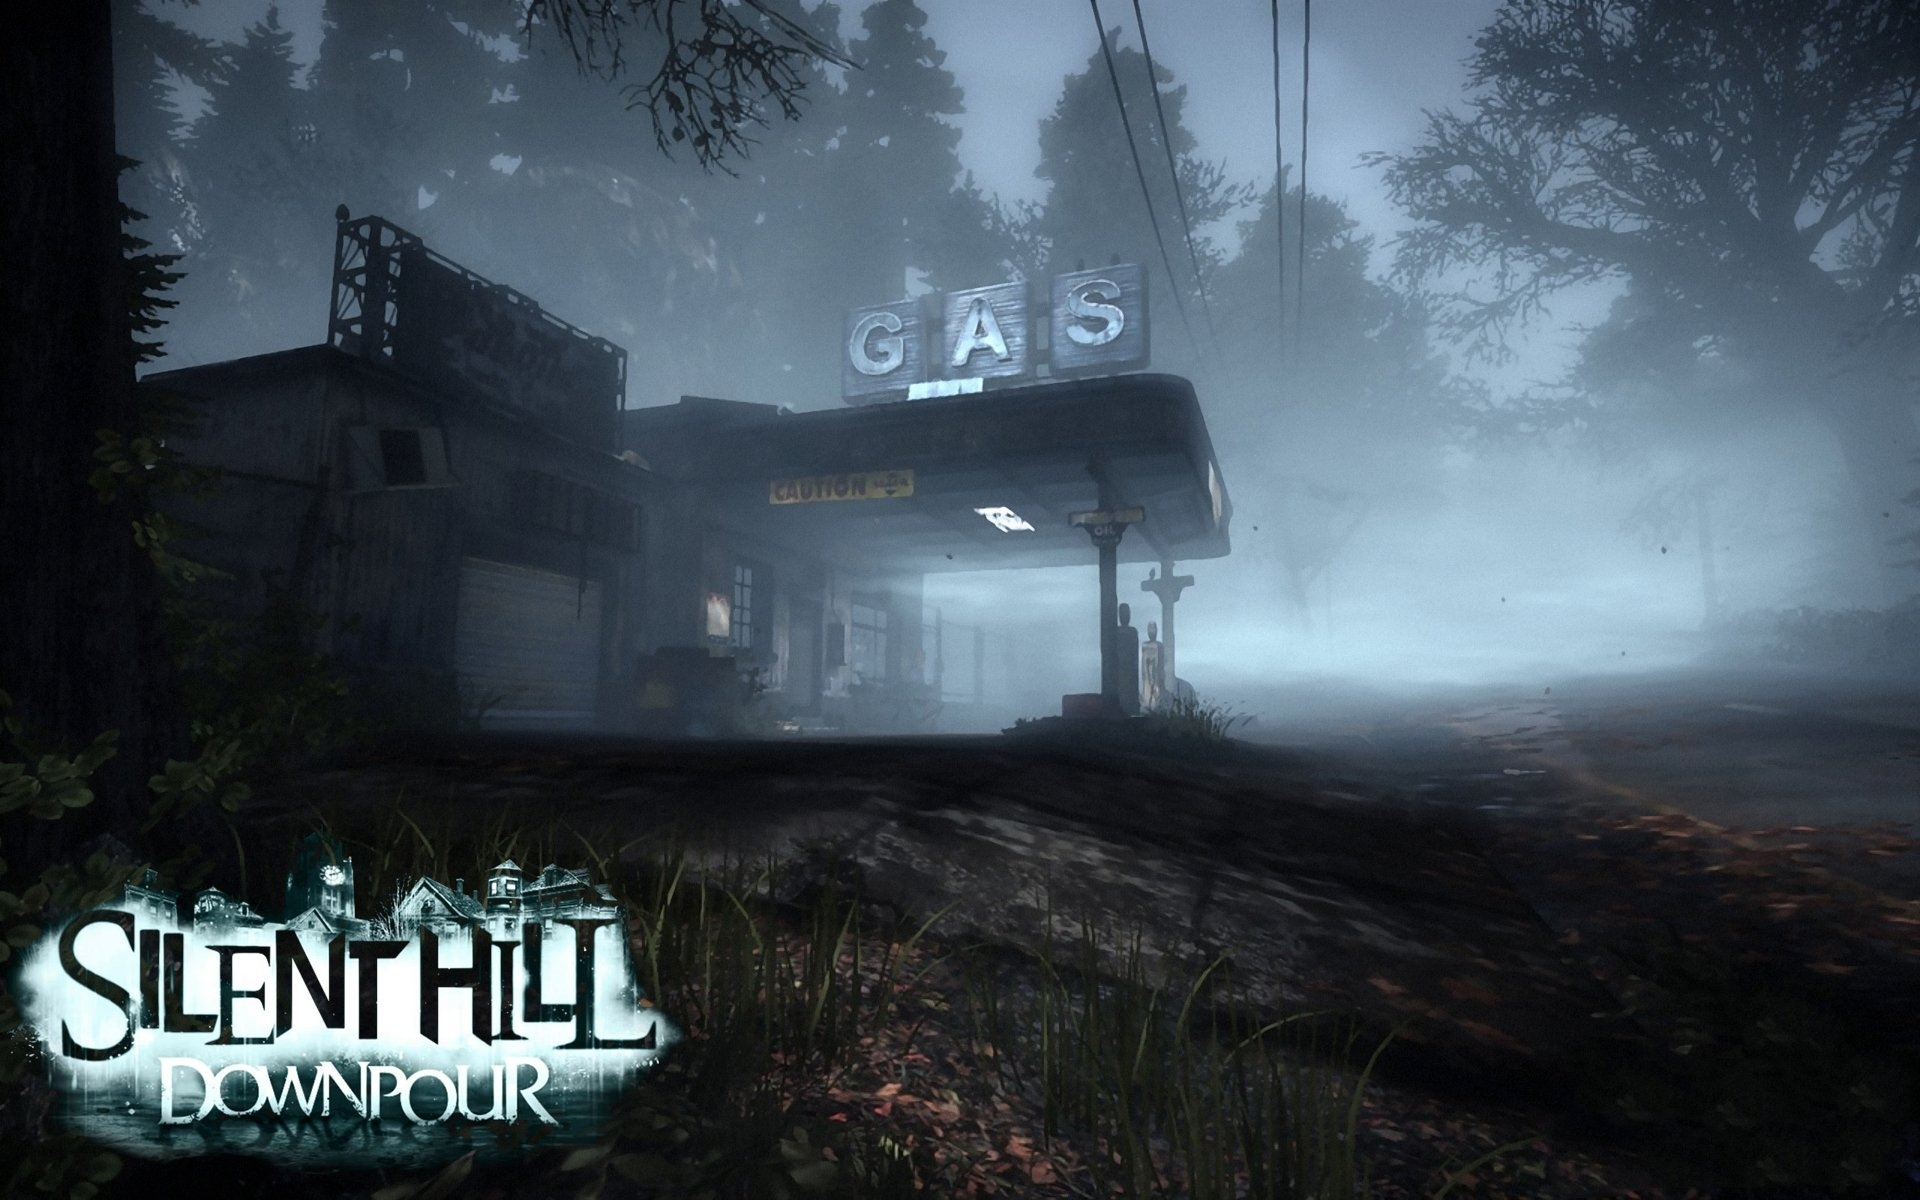 135 silent hill hd wallpapers   background images - wallpaper abyss